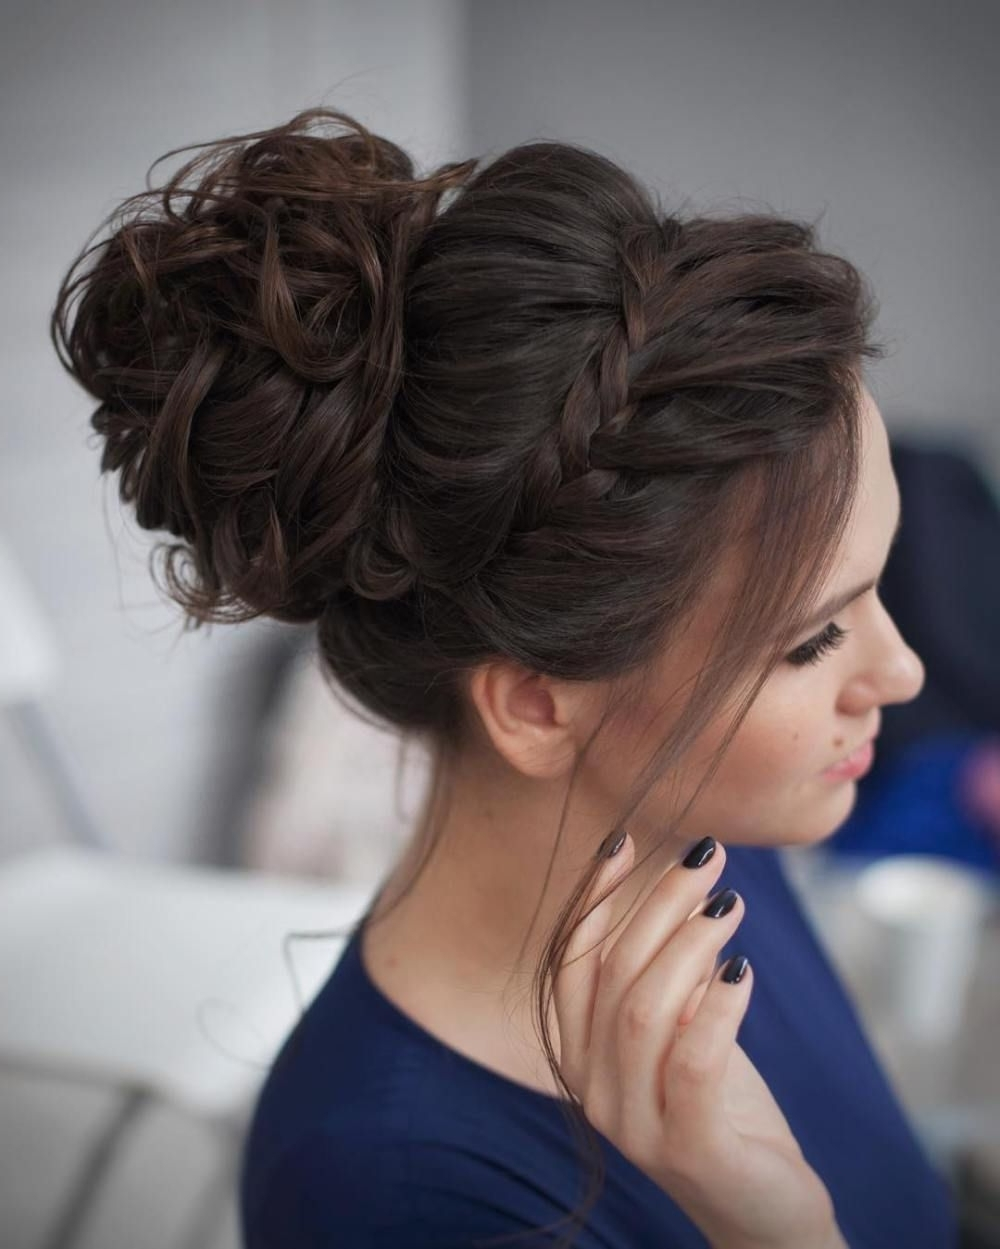 40 Most Delightful Prom Updos For Long Hair In 2018 | Updo, Prom And Inside Prom Updo Hairstyles For Long Hair (View 3 of 15)